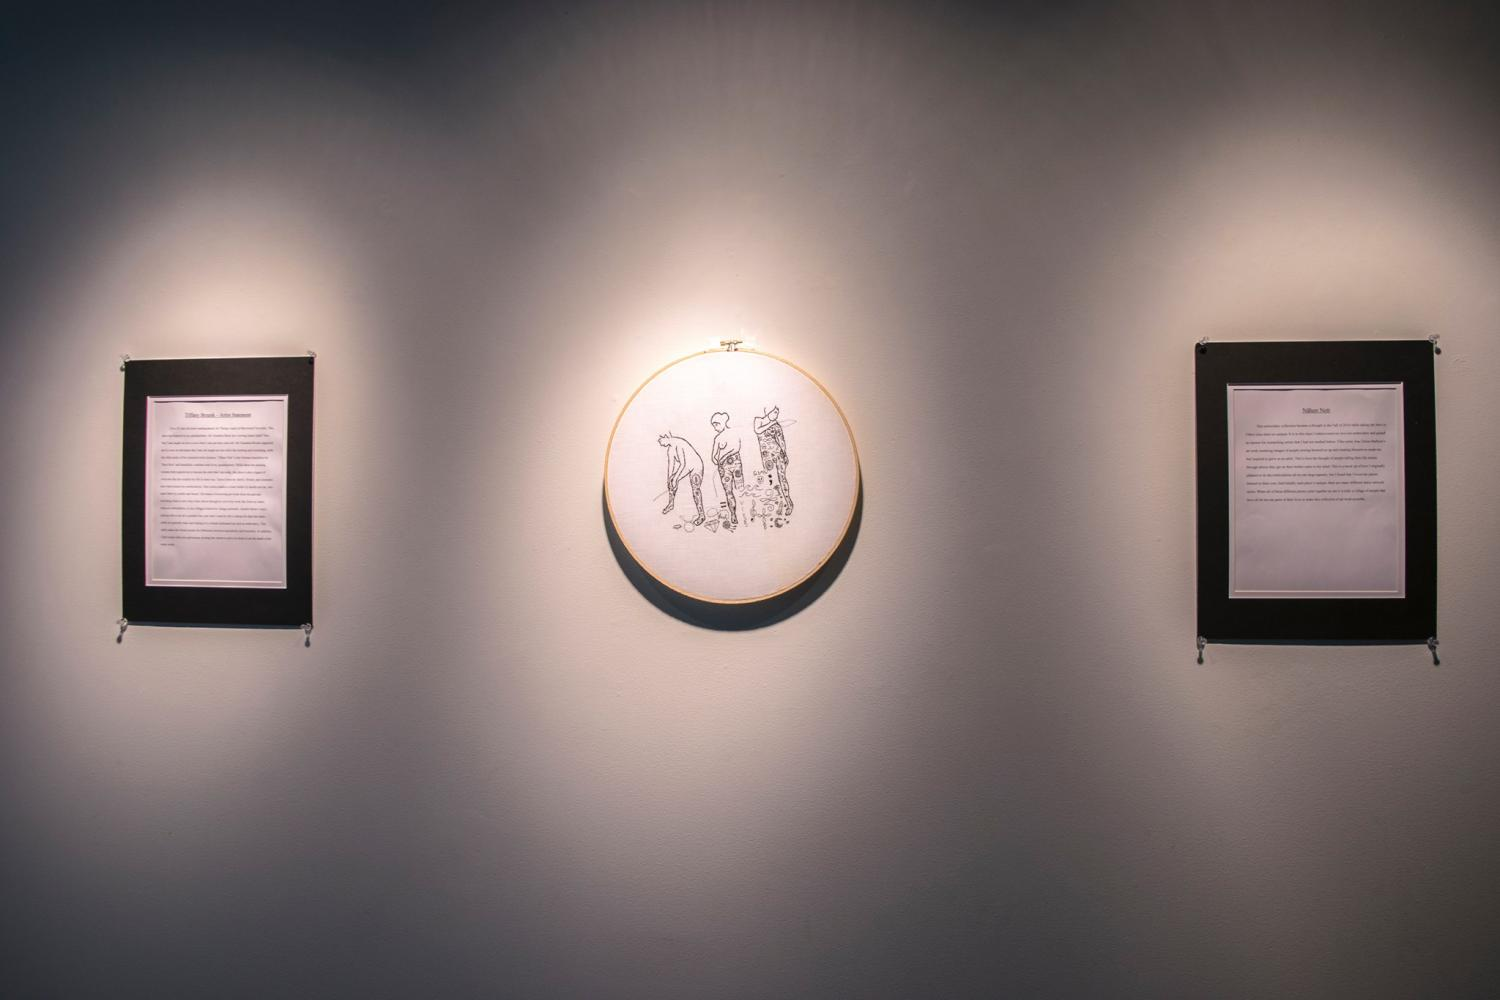 Brzenk's designs hang in the Shields Center for Visual Arts with a biography about Brzenk and her exhibitions.